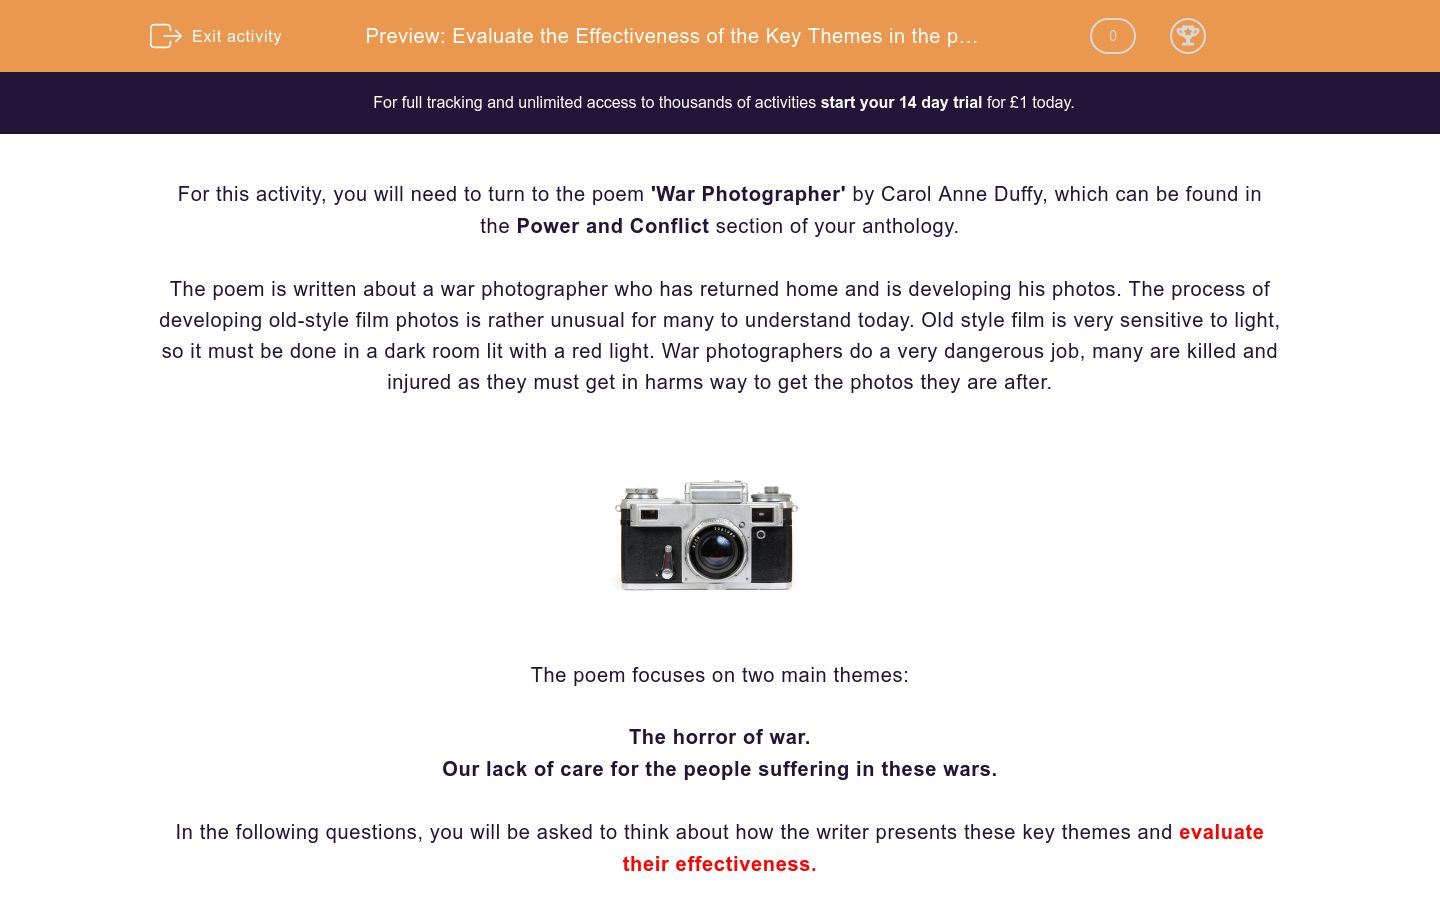 'Evaluate the Effectiveness of the Key Themes in the poem 'War Photographer' by Carol Ann Duffy' worksheet